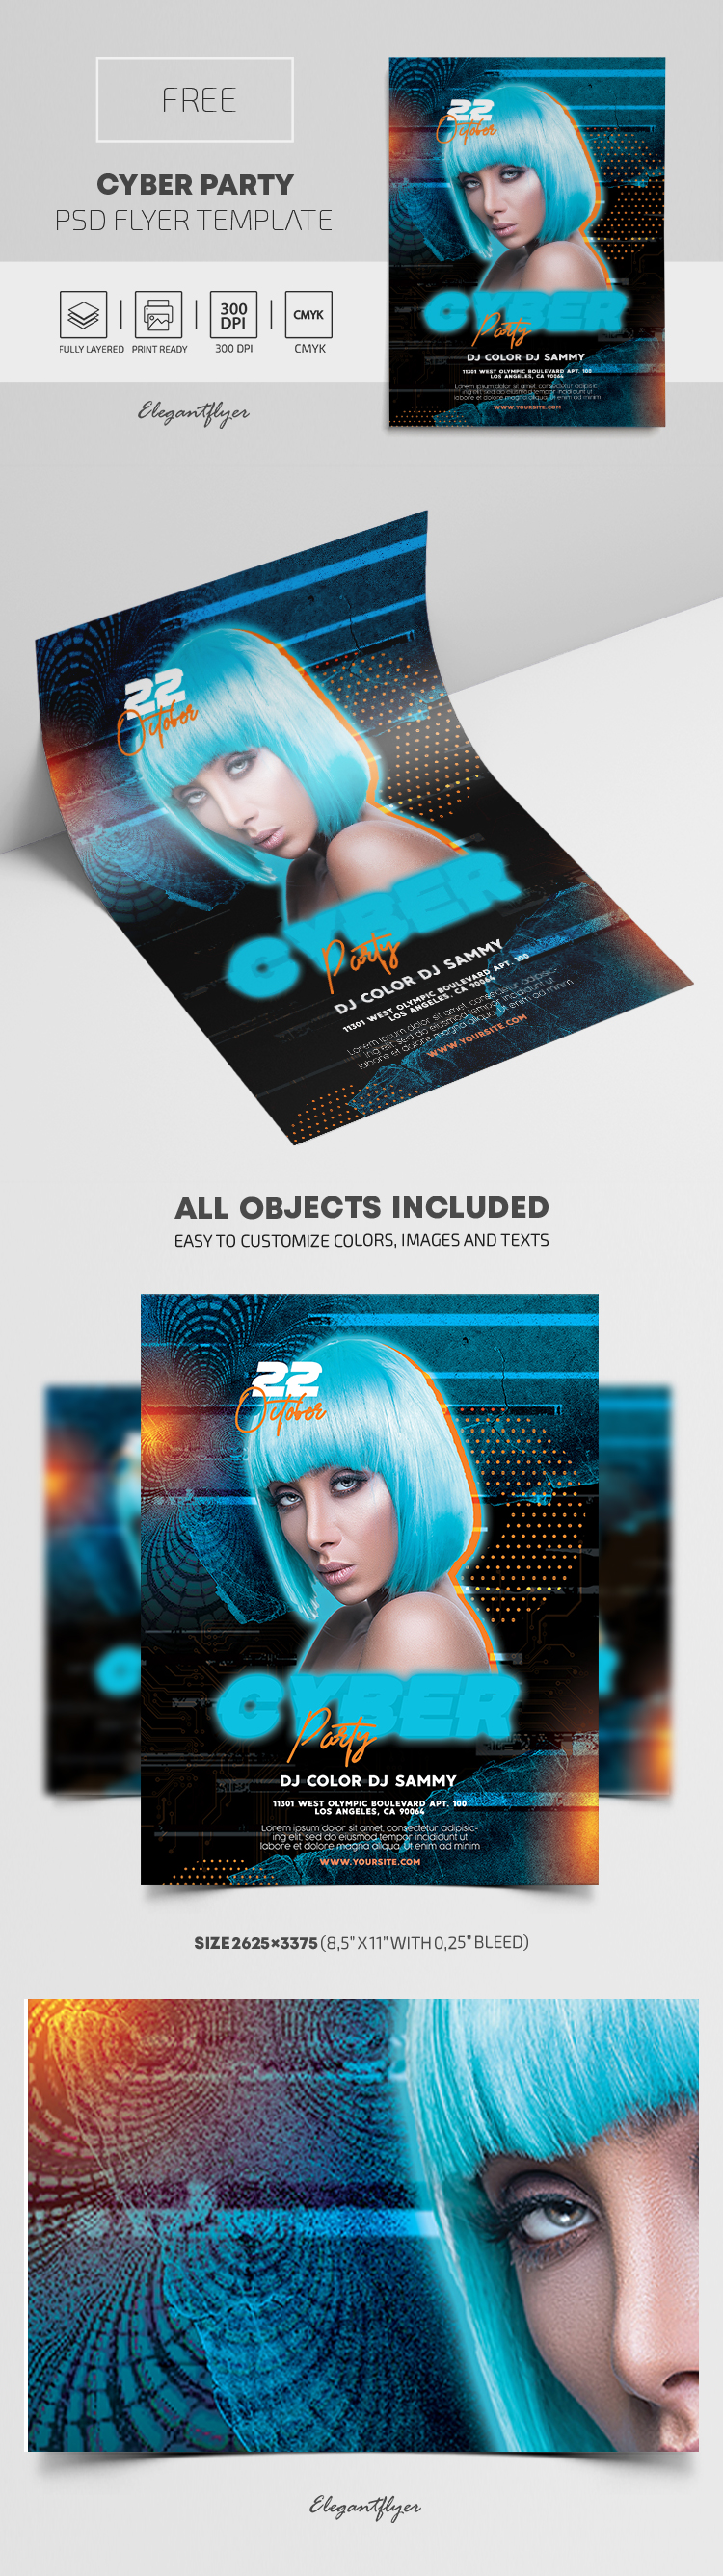 Cyber Party – Free Flyer PSD Template